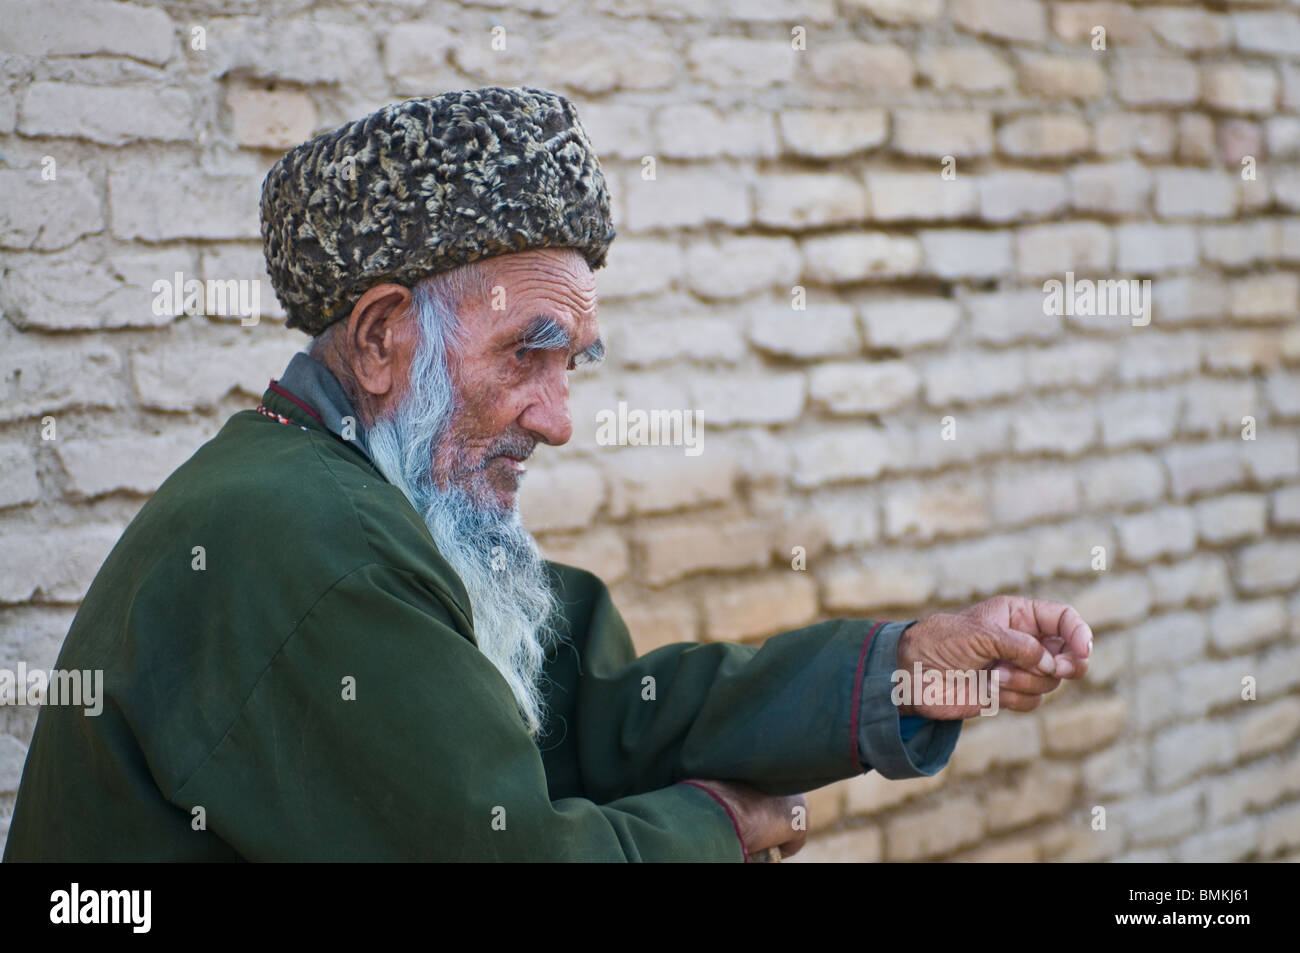 Old man with beard, Merv, Turkmenistan - Stock Image